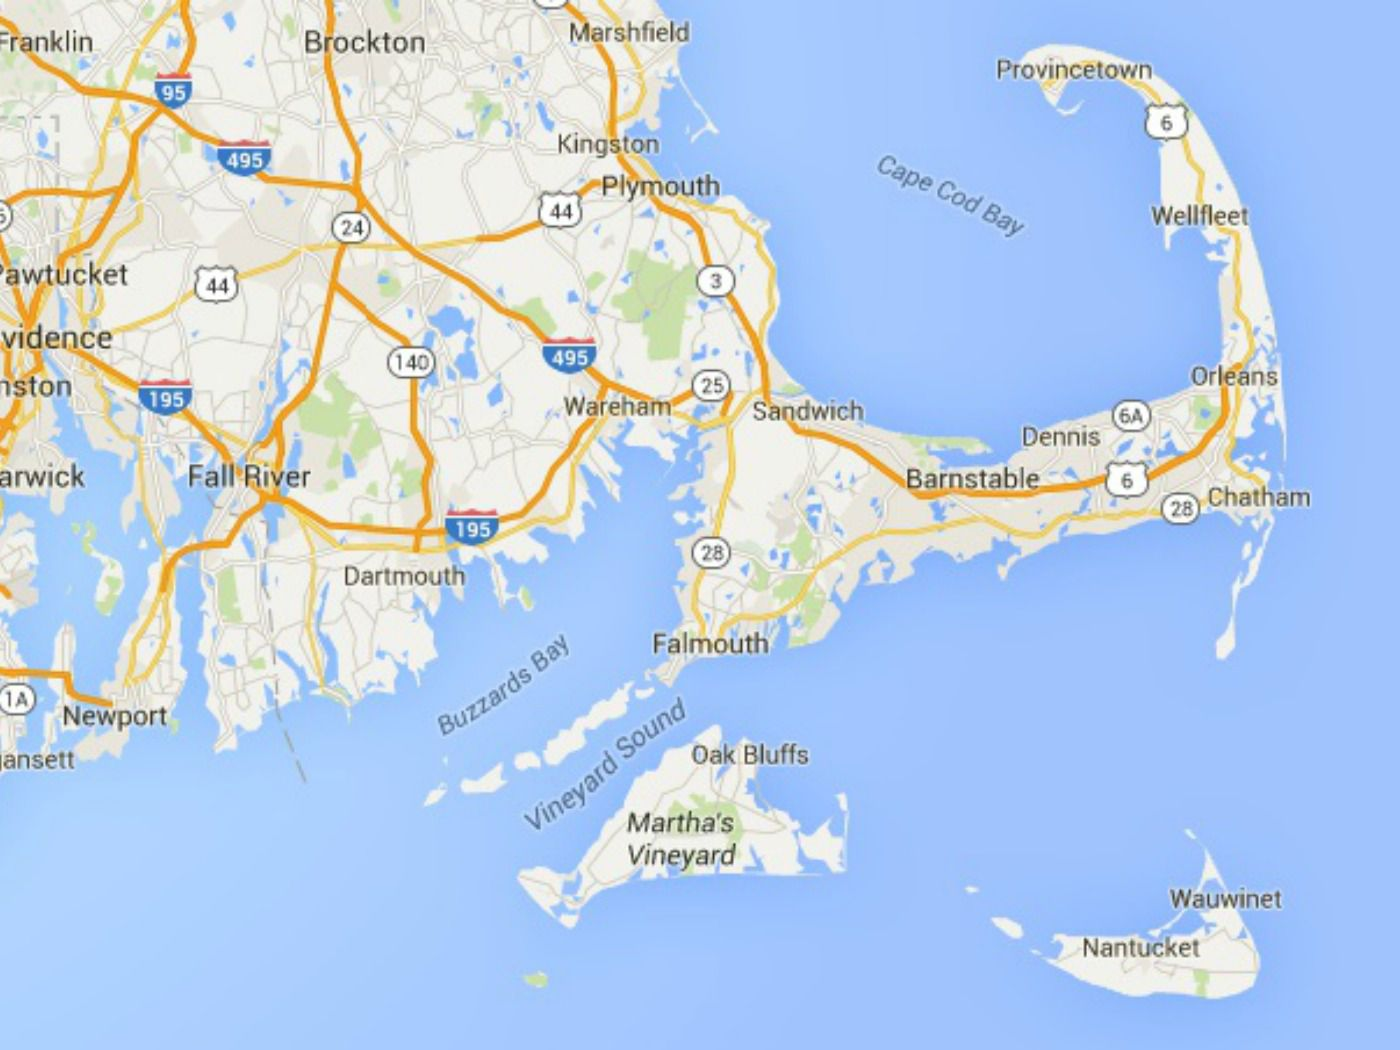 Maps Of Cape Cod Marthas Vineyard And Nantucket - Cape-cod-on-us-map